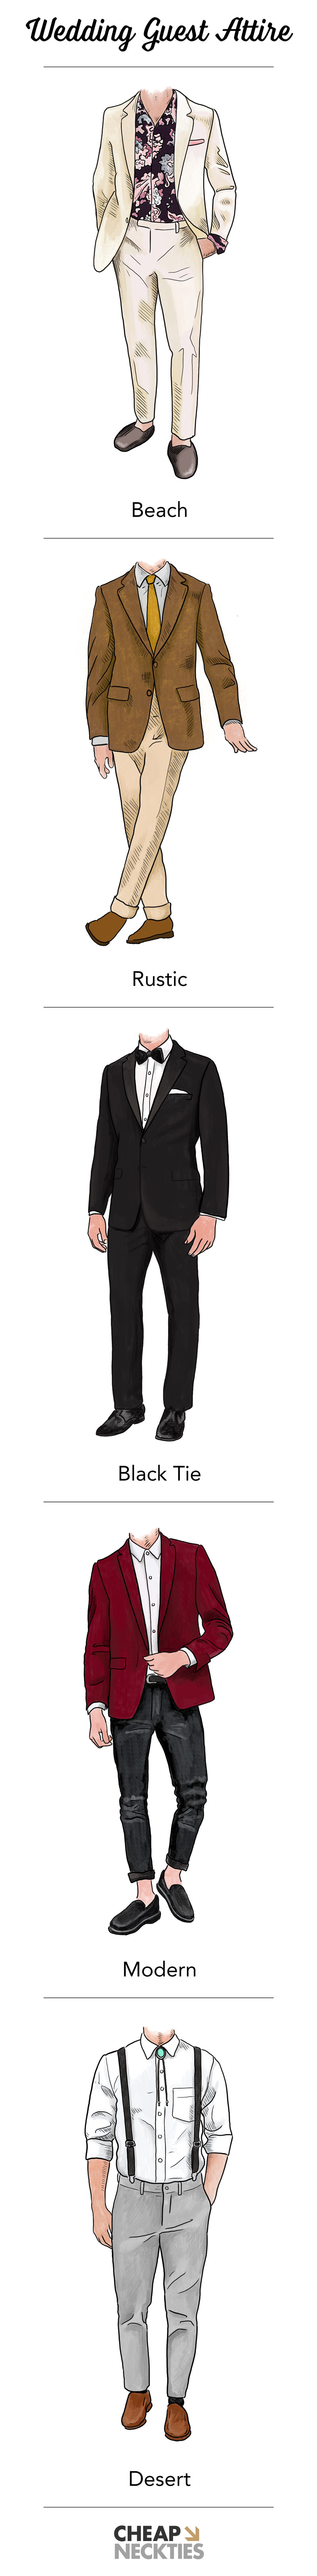 Men's Guide to Wedding Guest Attire